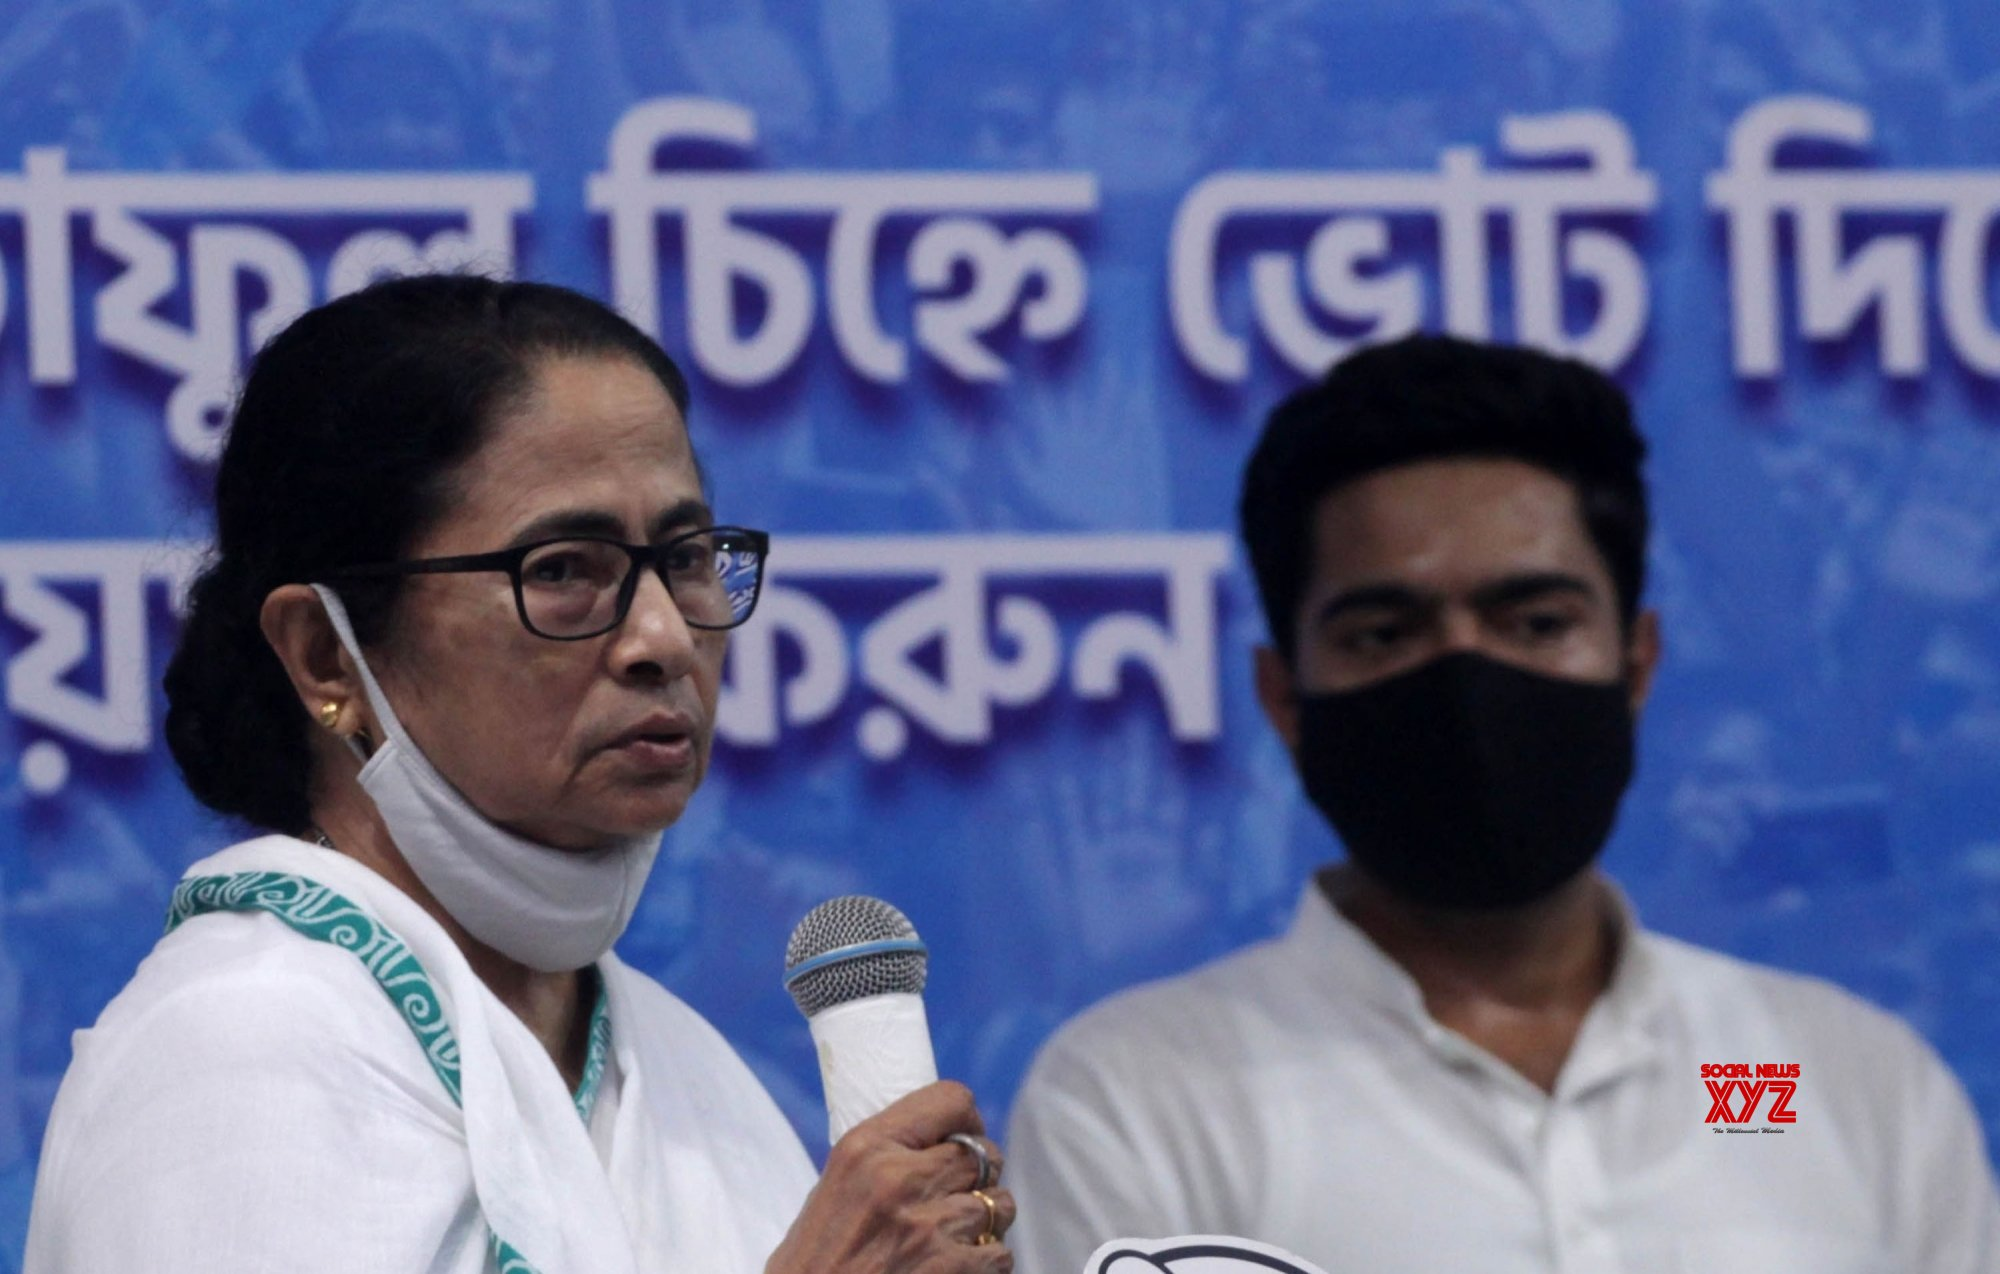 Kolkata: West Bengal Chief Minister and TMC candidate of Bhawanipur constituency by - poll Mamata Banerjee during election campaign in Kolkata. #Gallery